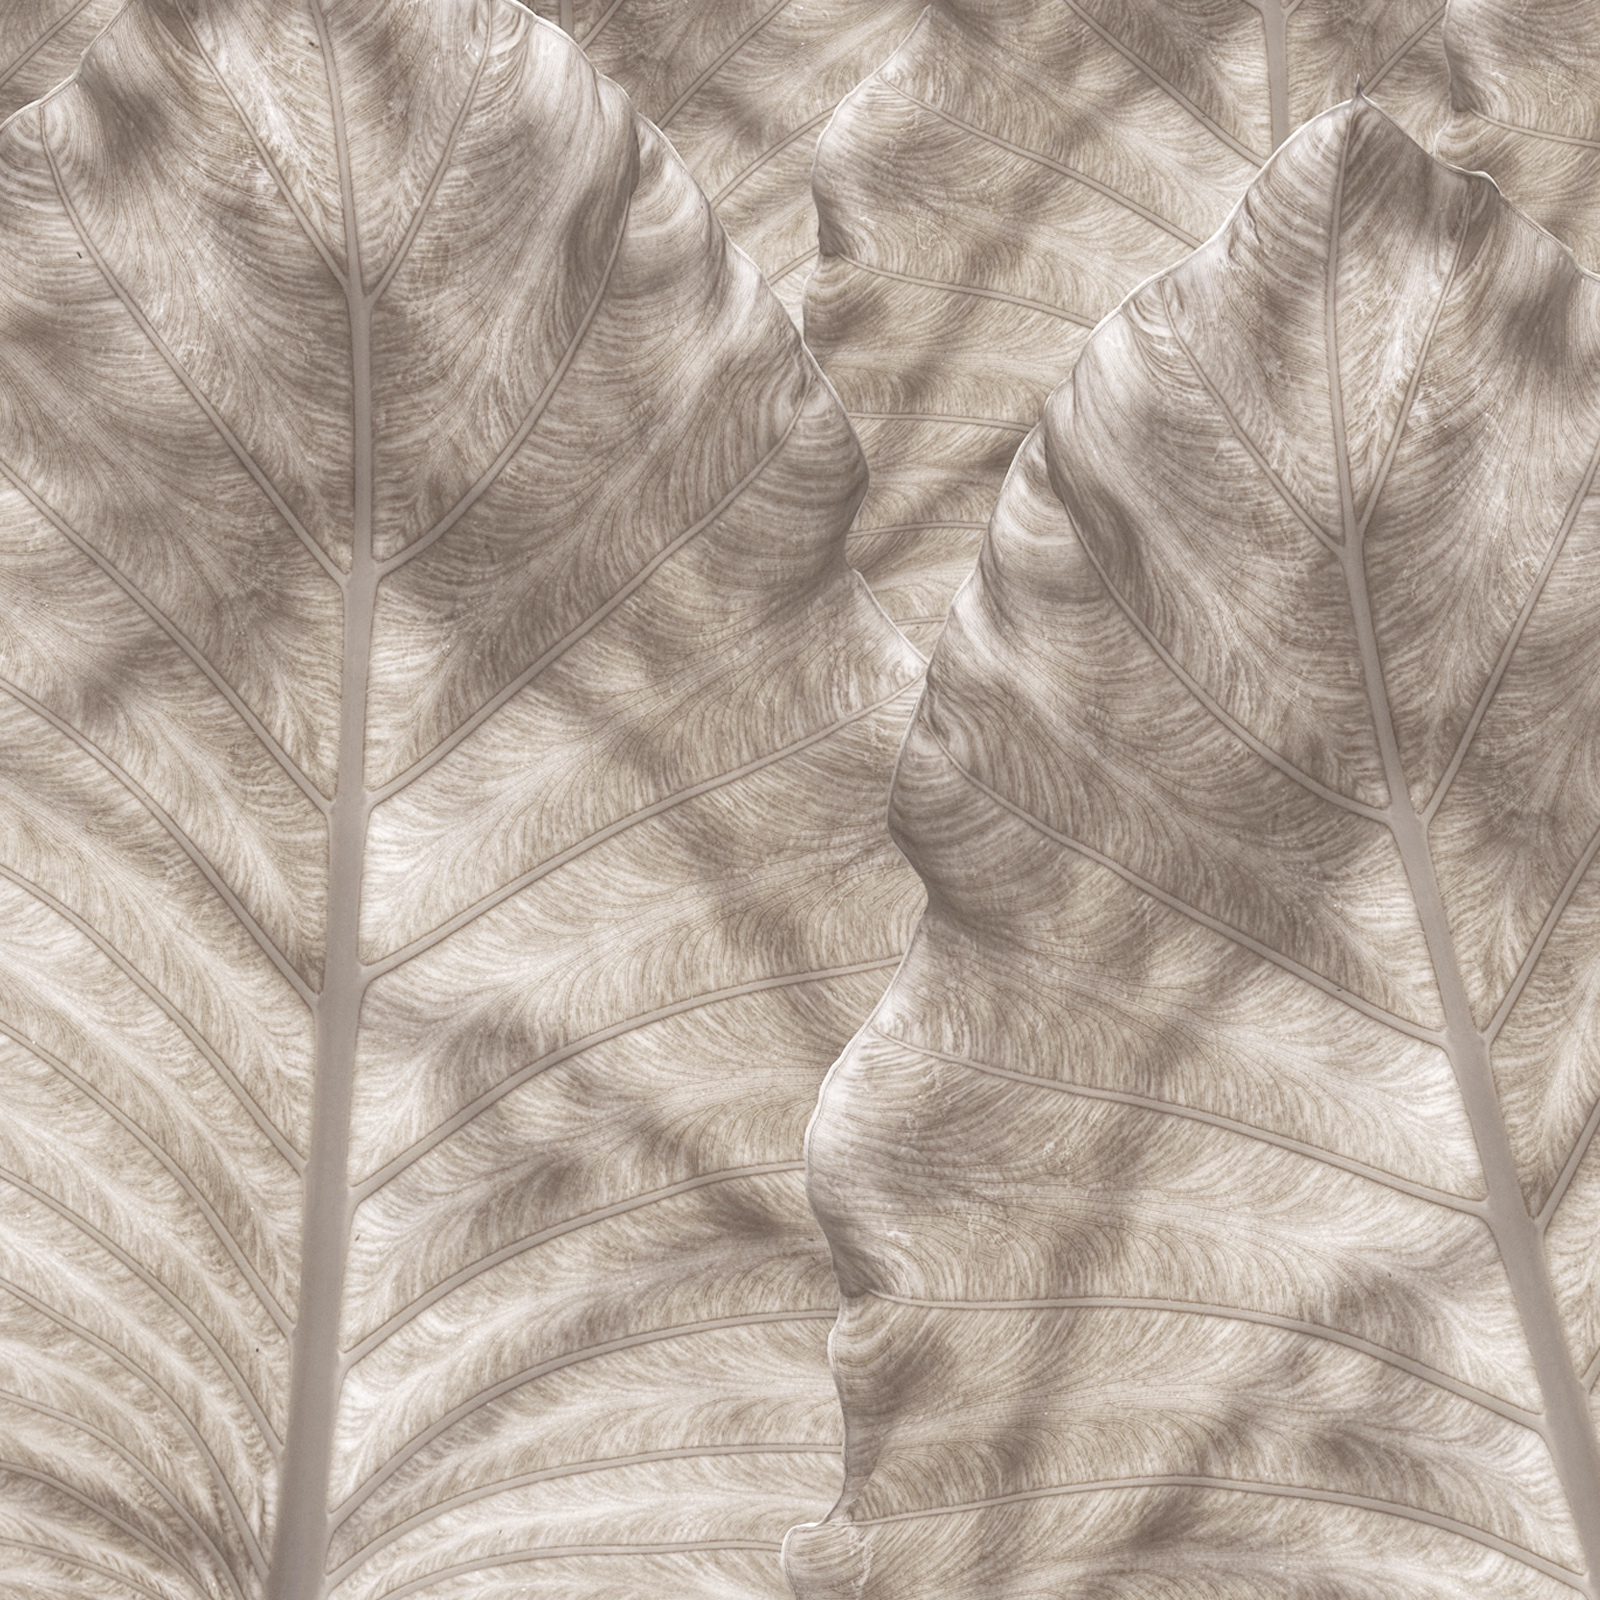 SHADOW FROND BEIGE.jpg